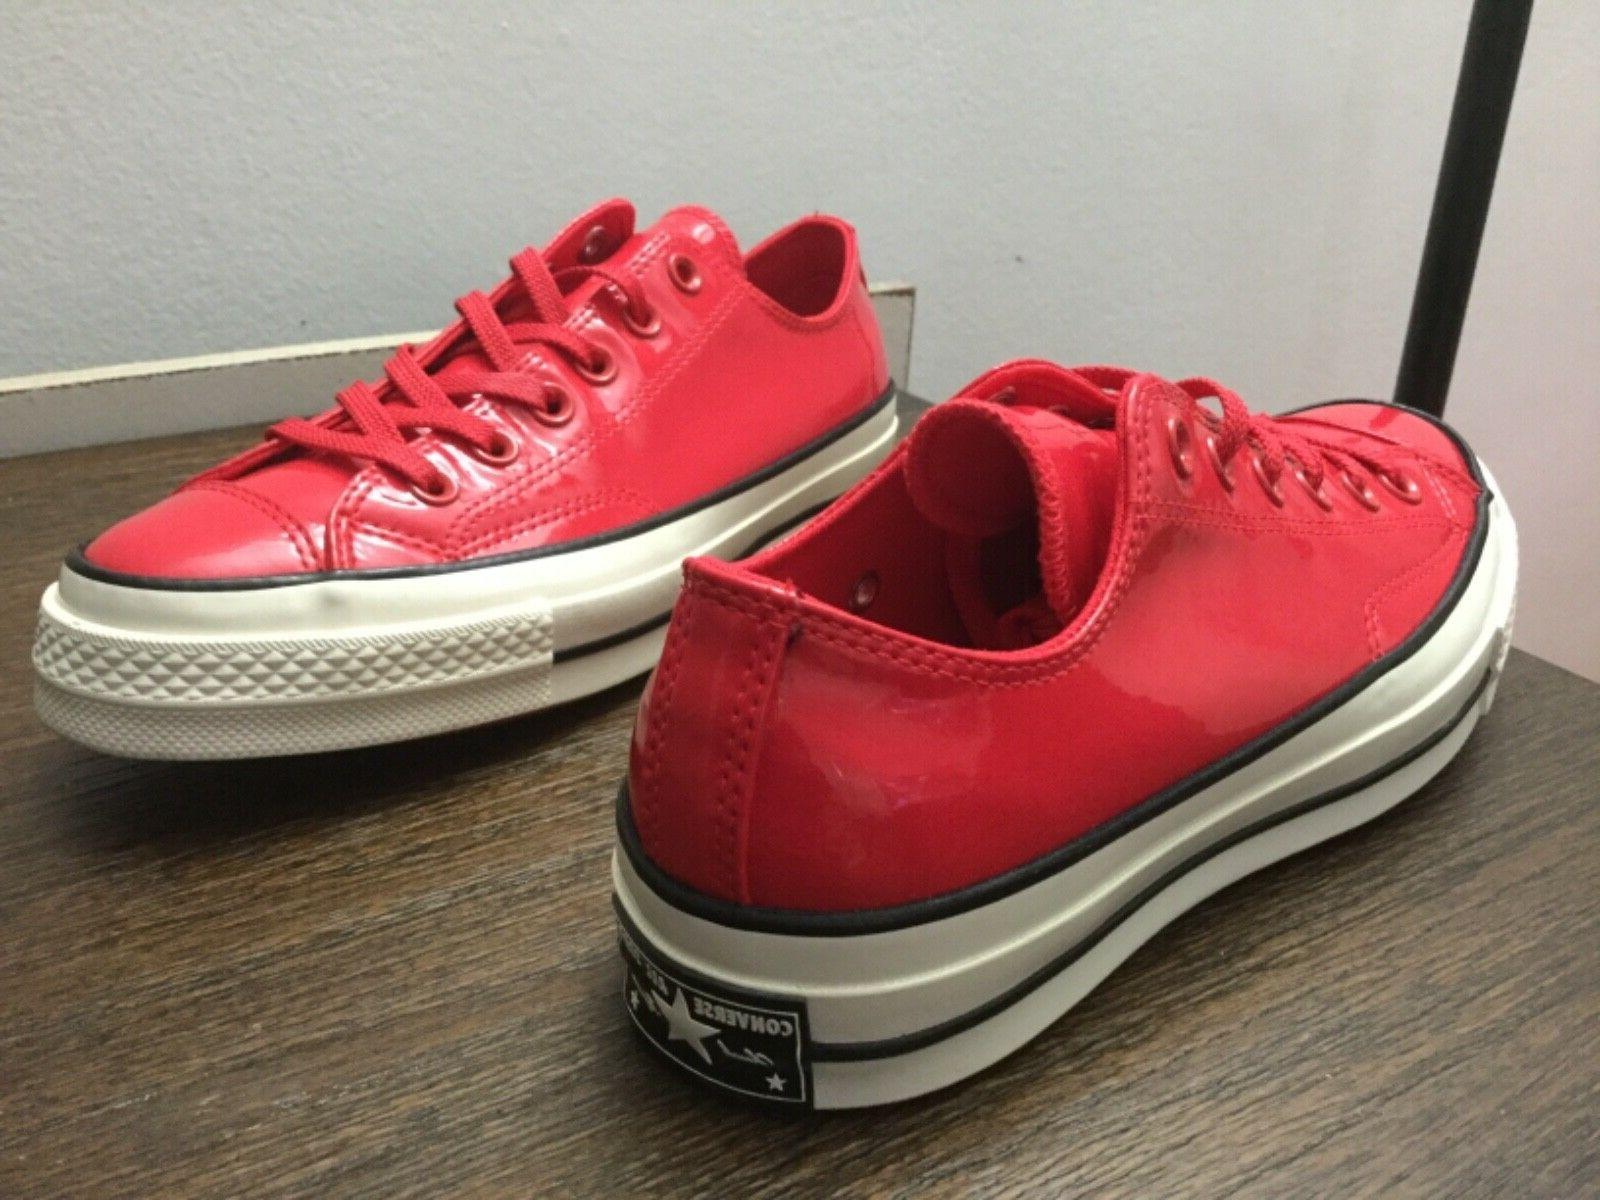 Converse All Star Patent Leather Cherry 6-8.5